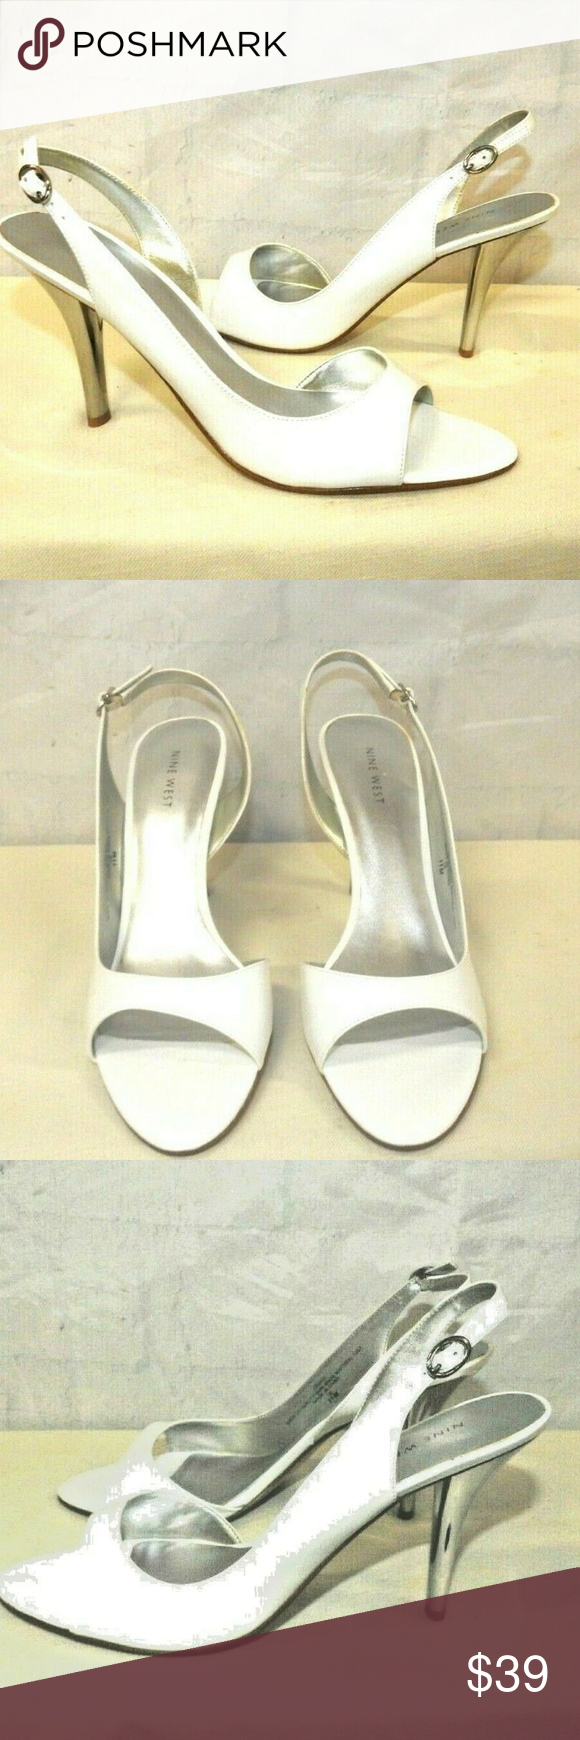 254ba2493d28a Patent Leather Peep Toe Pumps Heels Size 11 in 2019